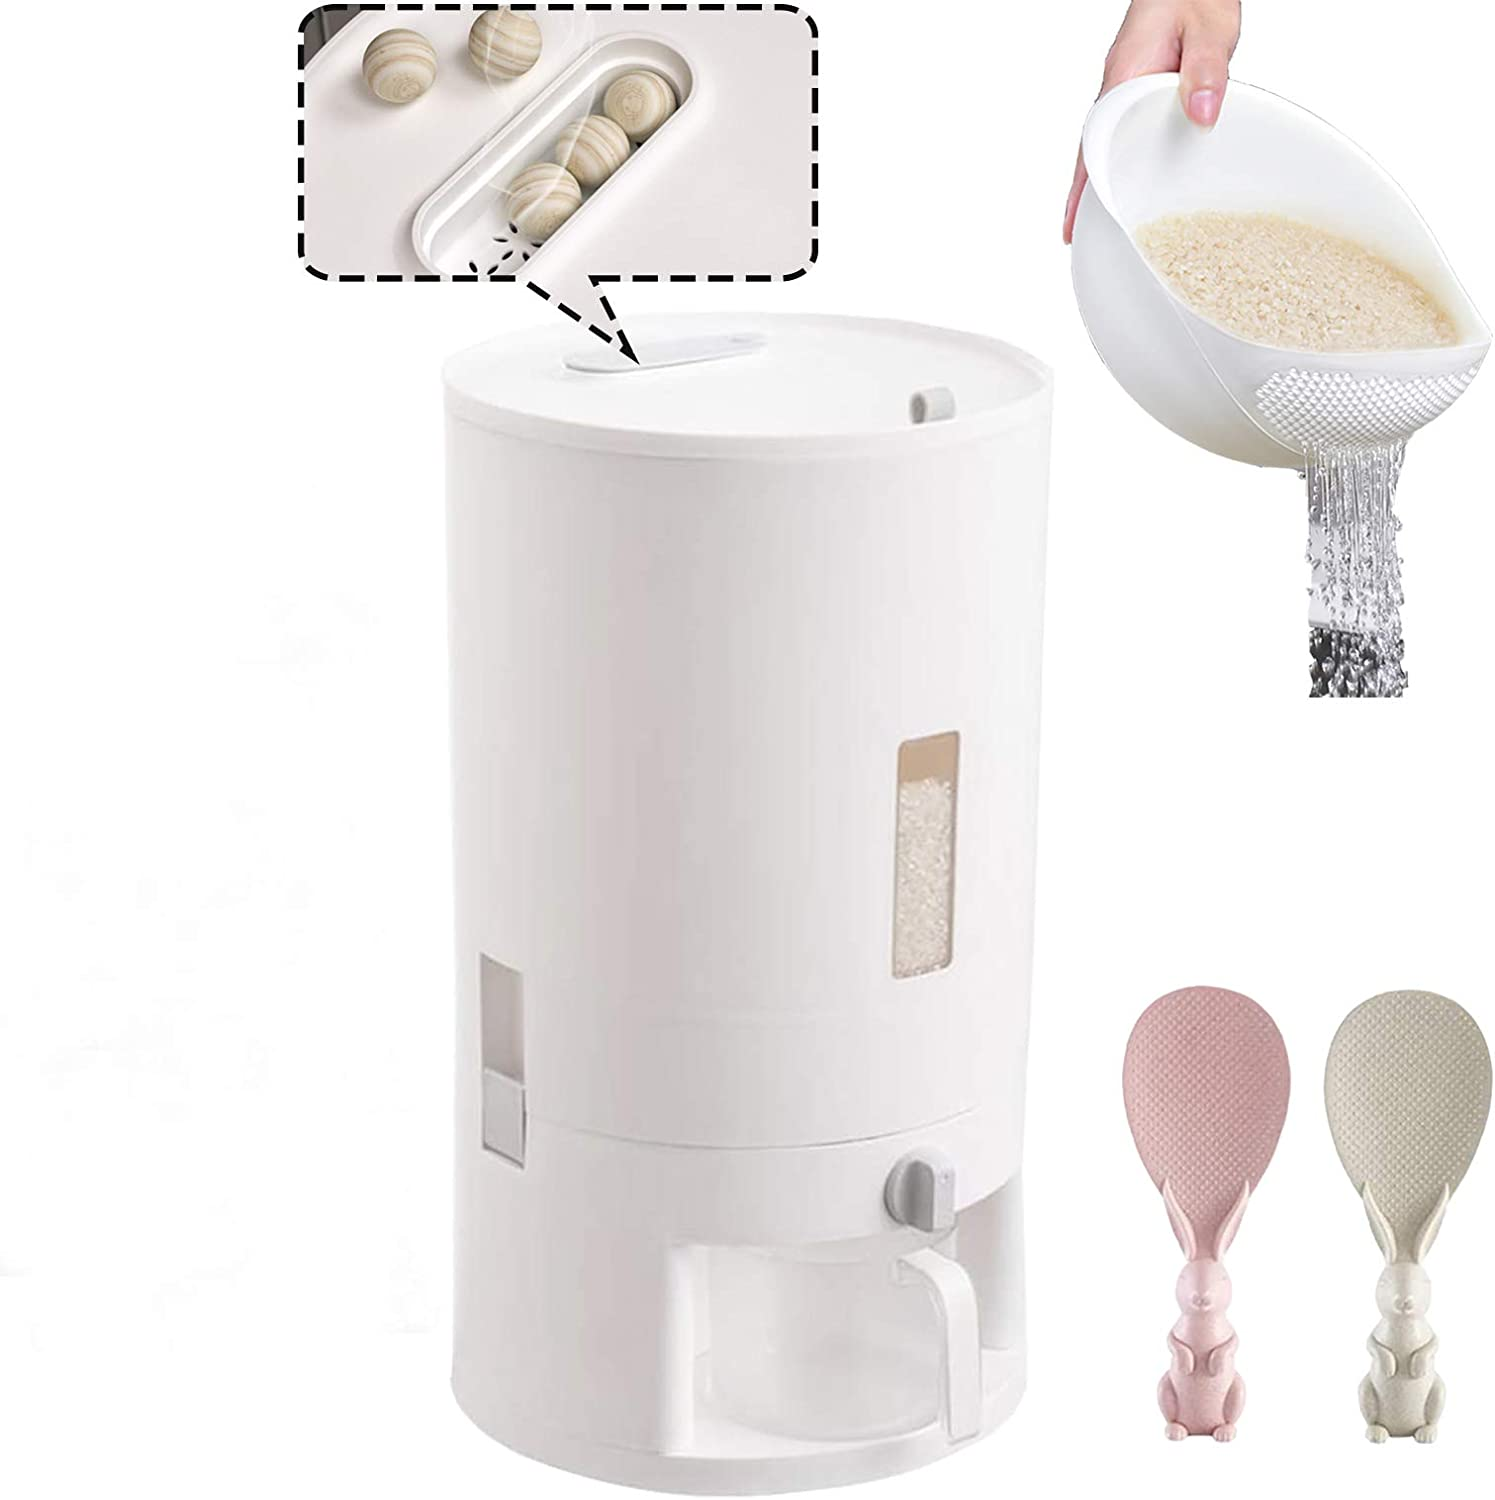 Rice Dispenser rice Storage Box, Large Kitchen Food Grain Storage Container, Automatic Grain Storage Bin, Household rice bucket with lid, measuring cup, drain basket, rice spoon-Wihte… (white 11kg)